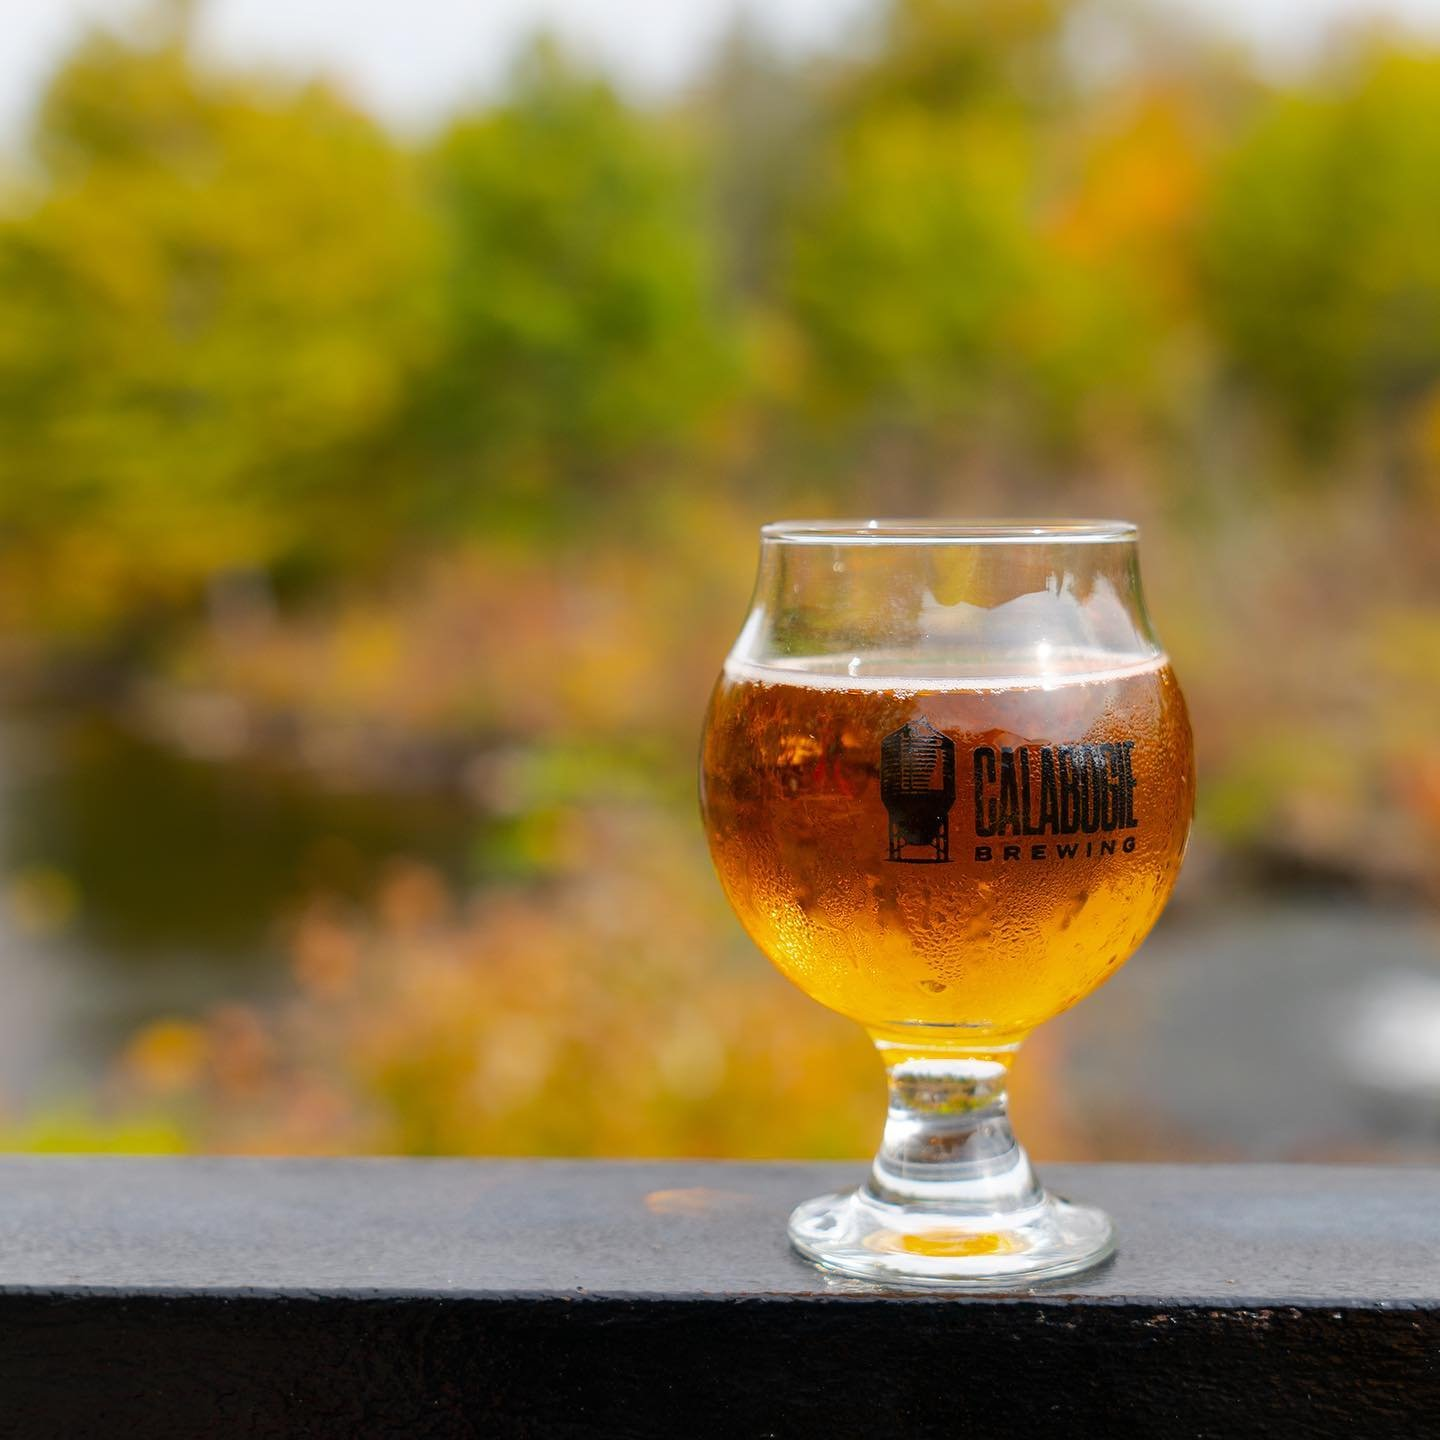 A sweating glass of pale ale on a ledge with autumn colours in the background